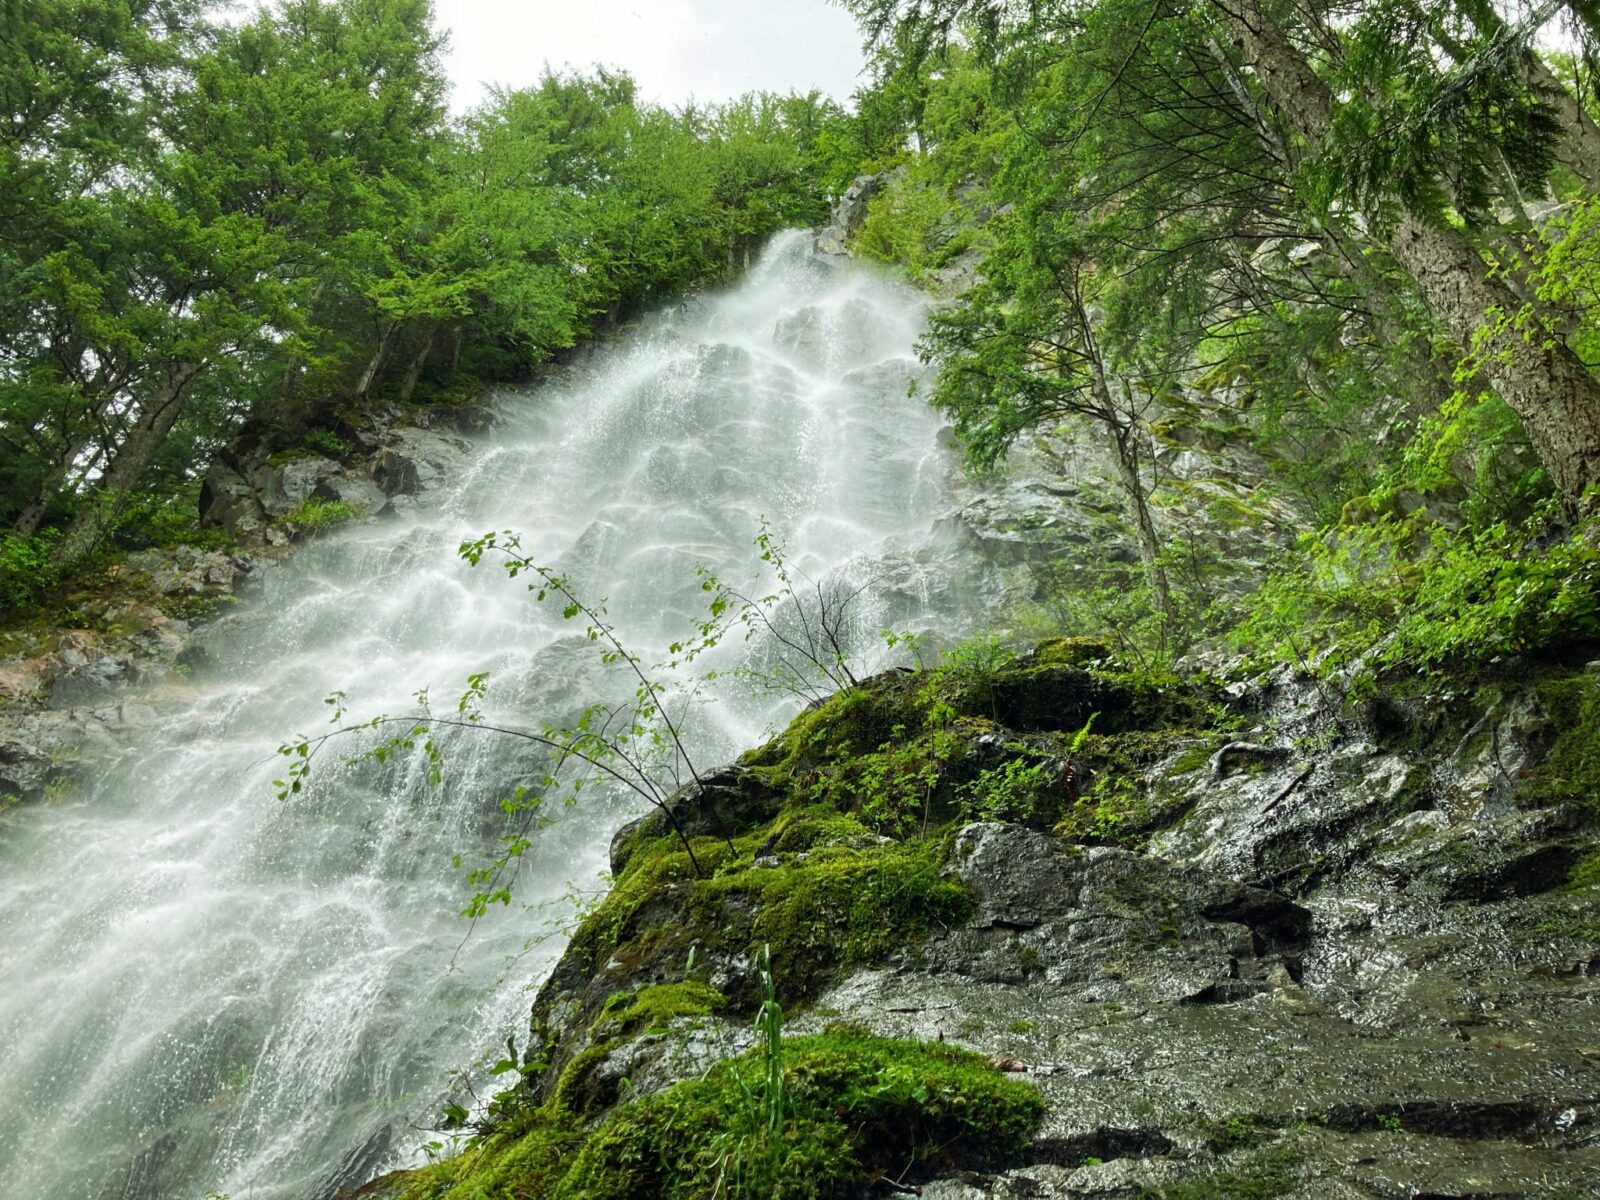 Looking up from the base of a steep waterfall with water and spray coming down a steep rock face. There are rocks and trees surrounding it